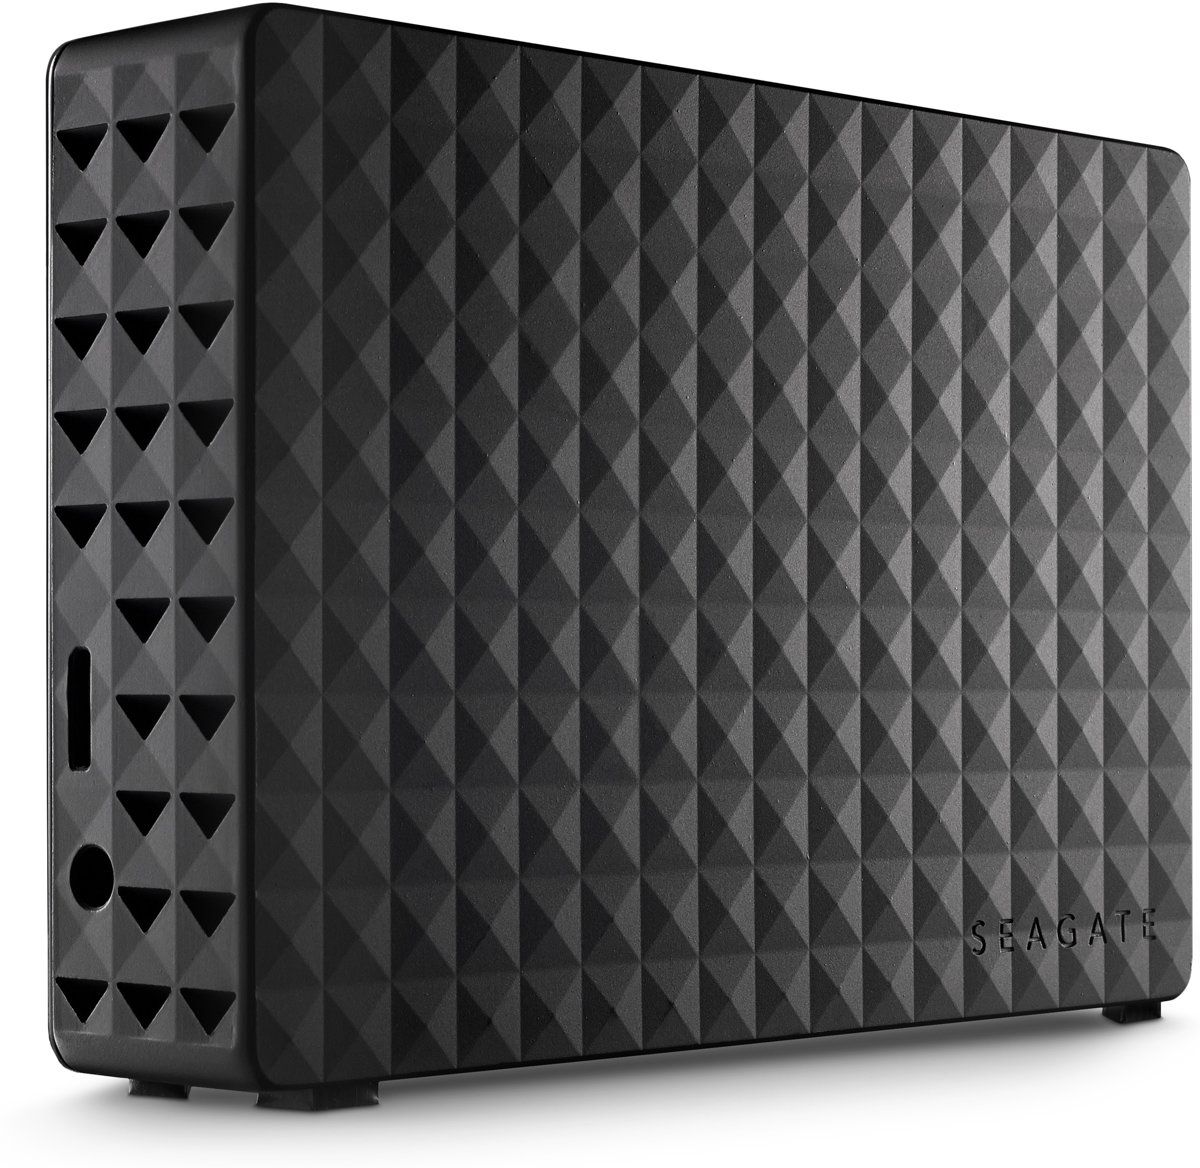 Expansion Desktop 2 TB